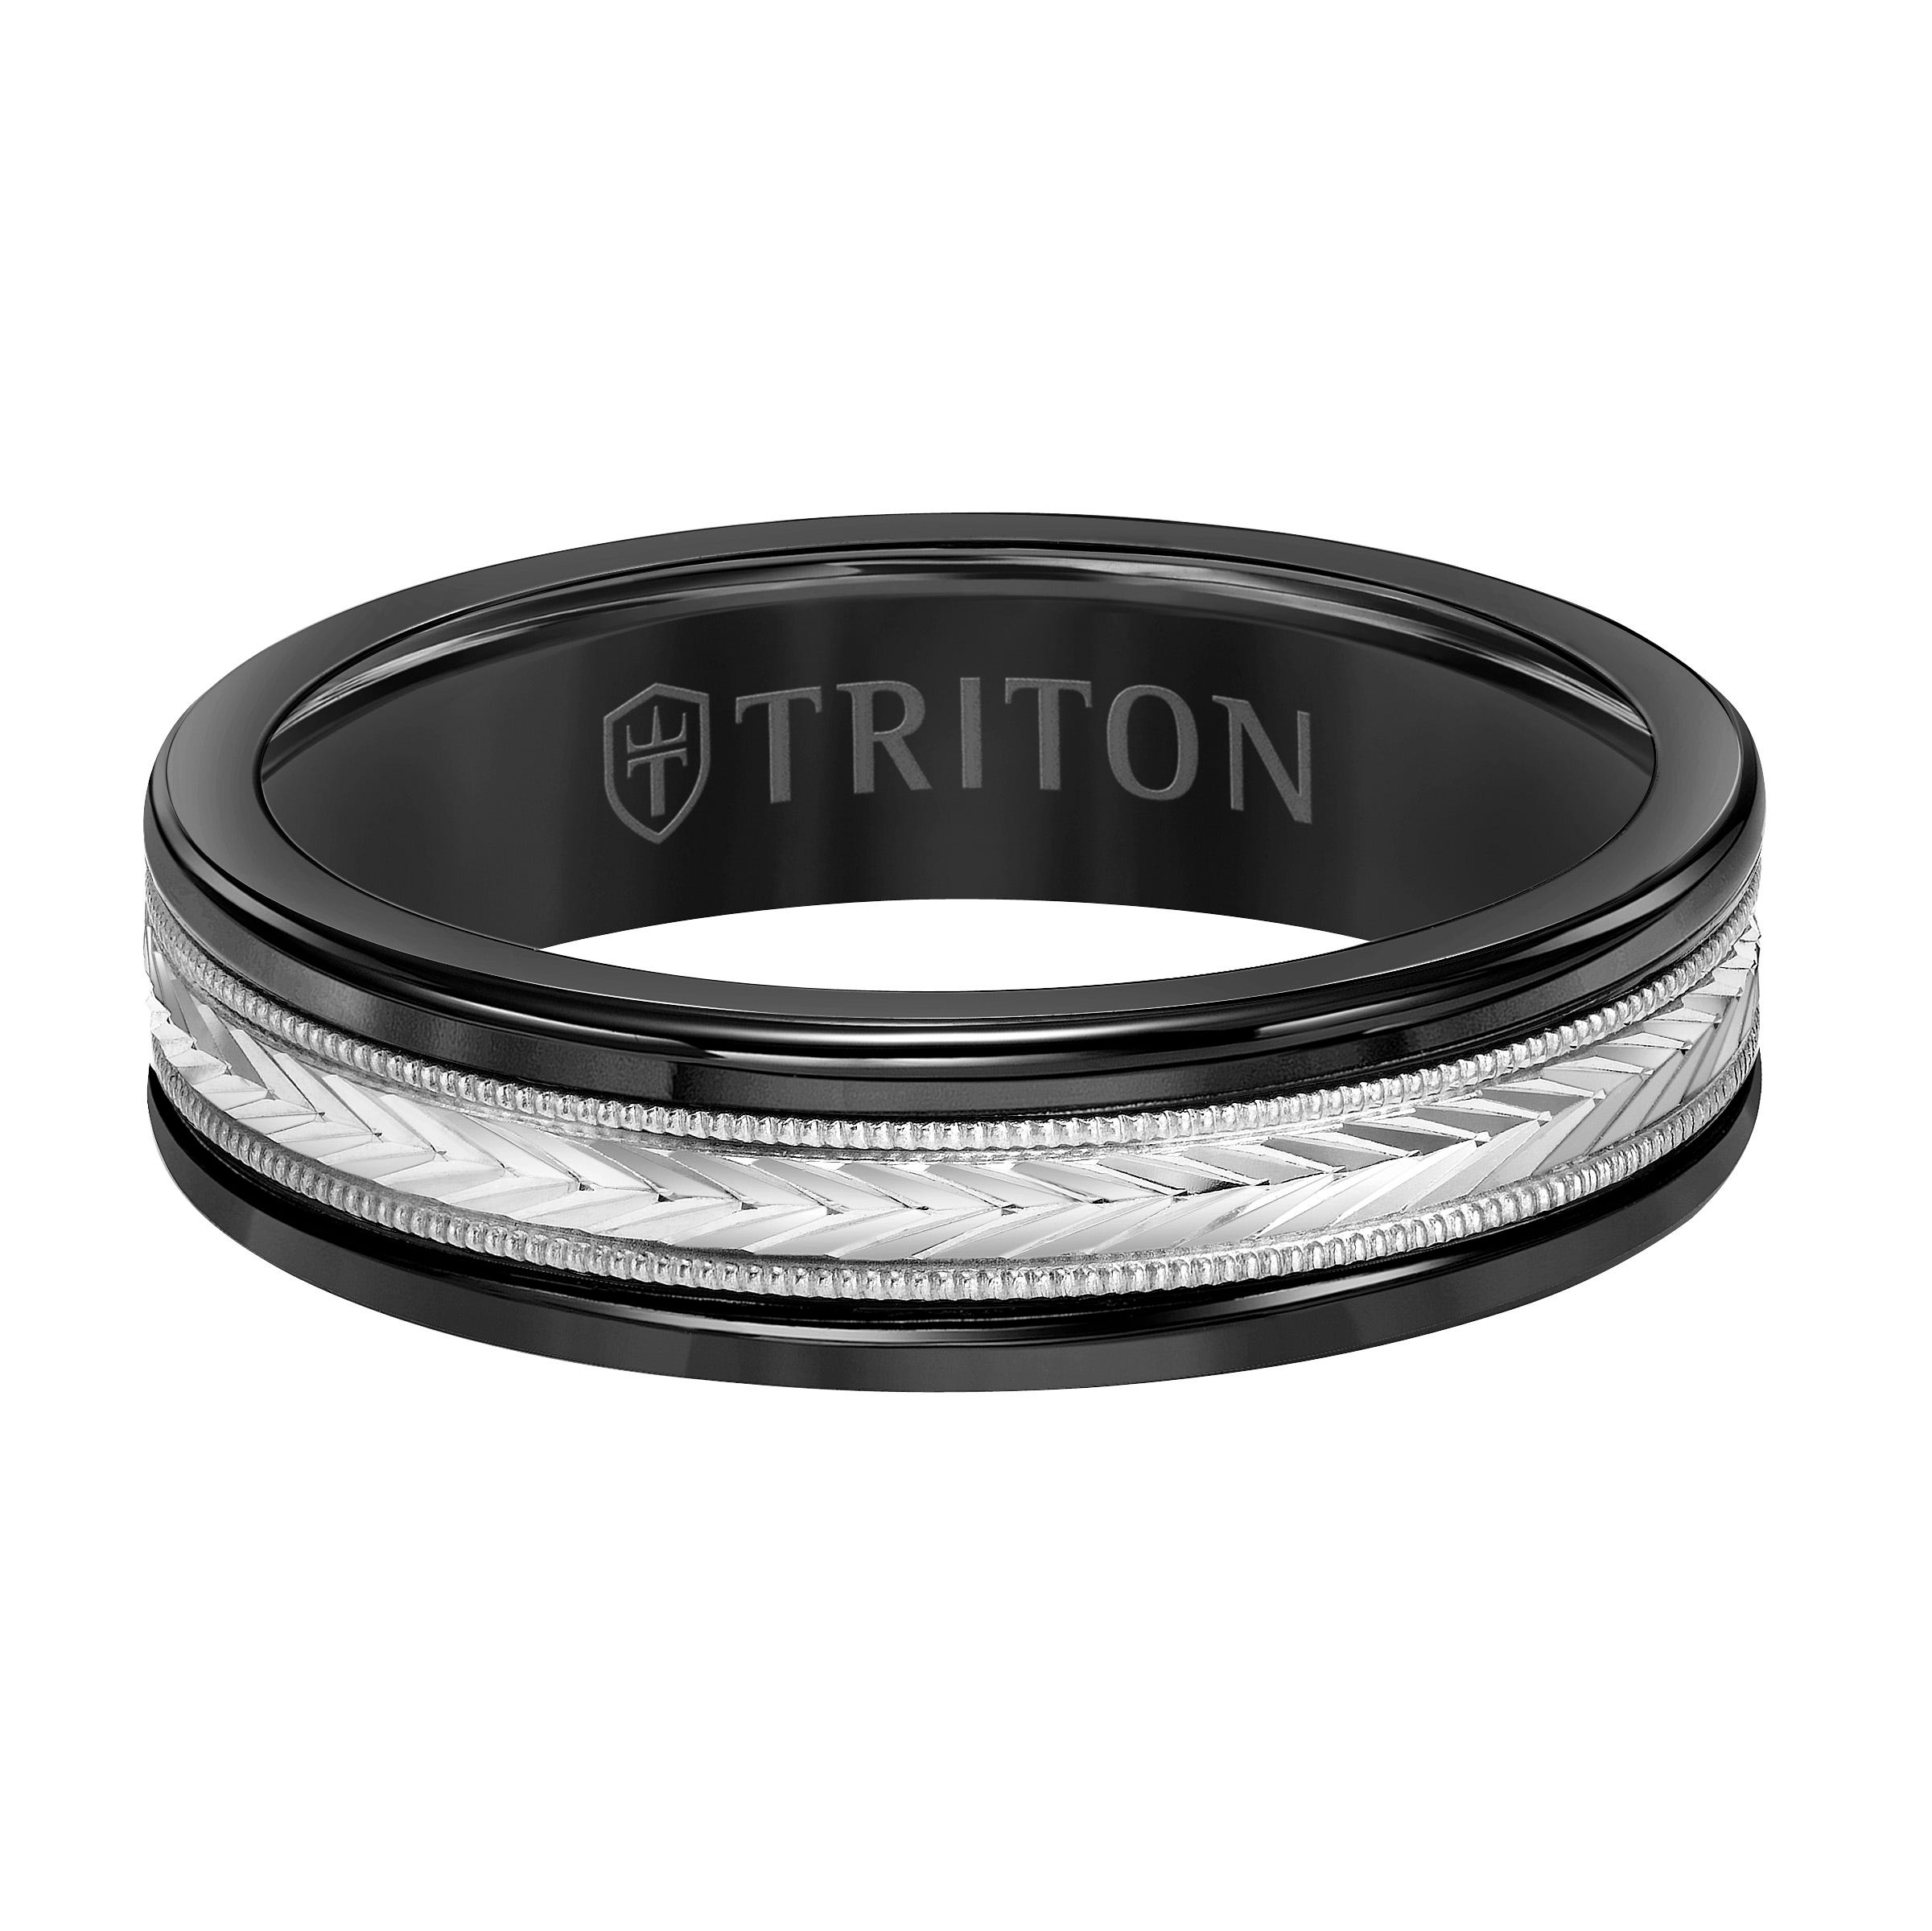 Triton Men's 6mm Black Tungsten Carbide and 14k White Gold Patterned Inlay Wedding Band